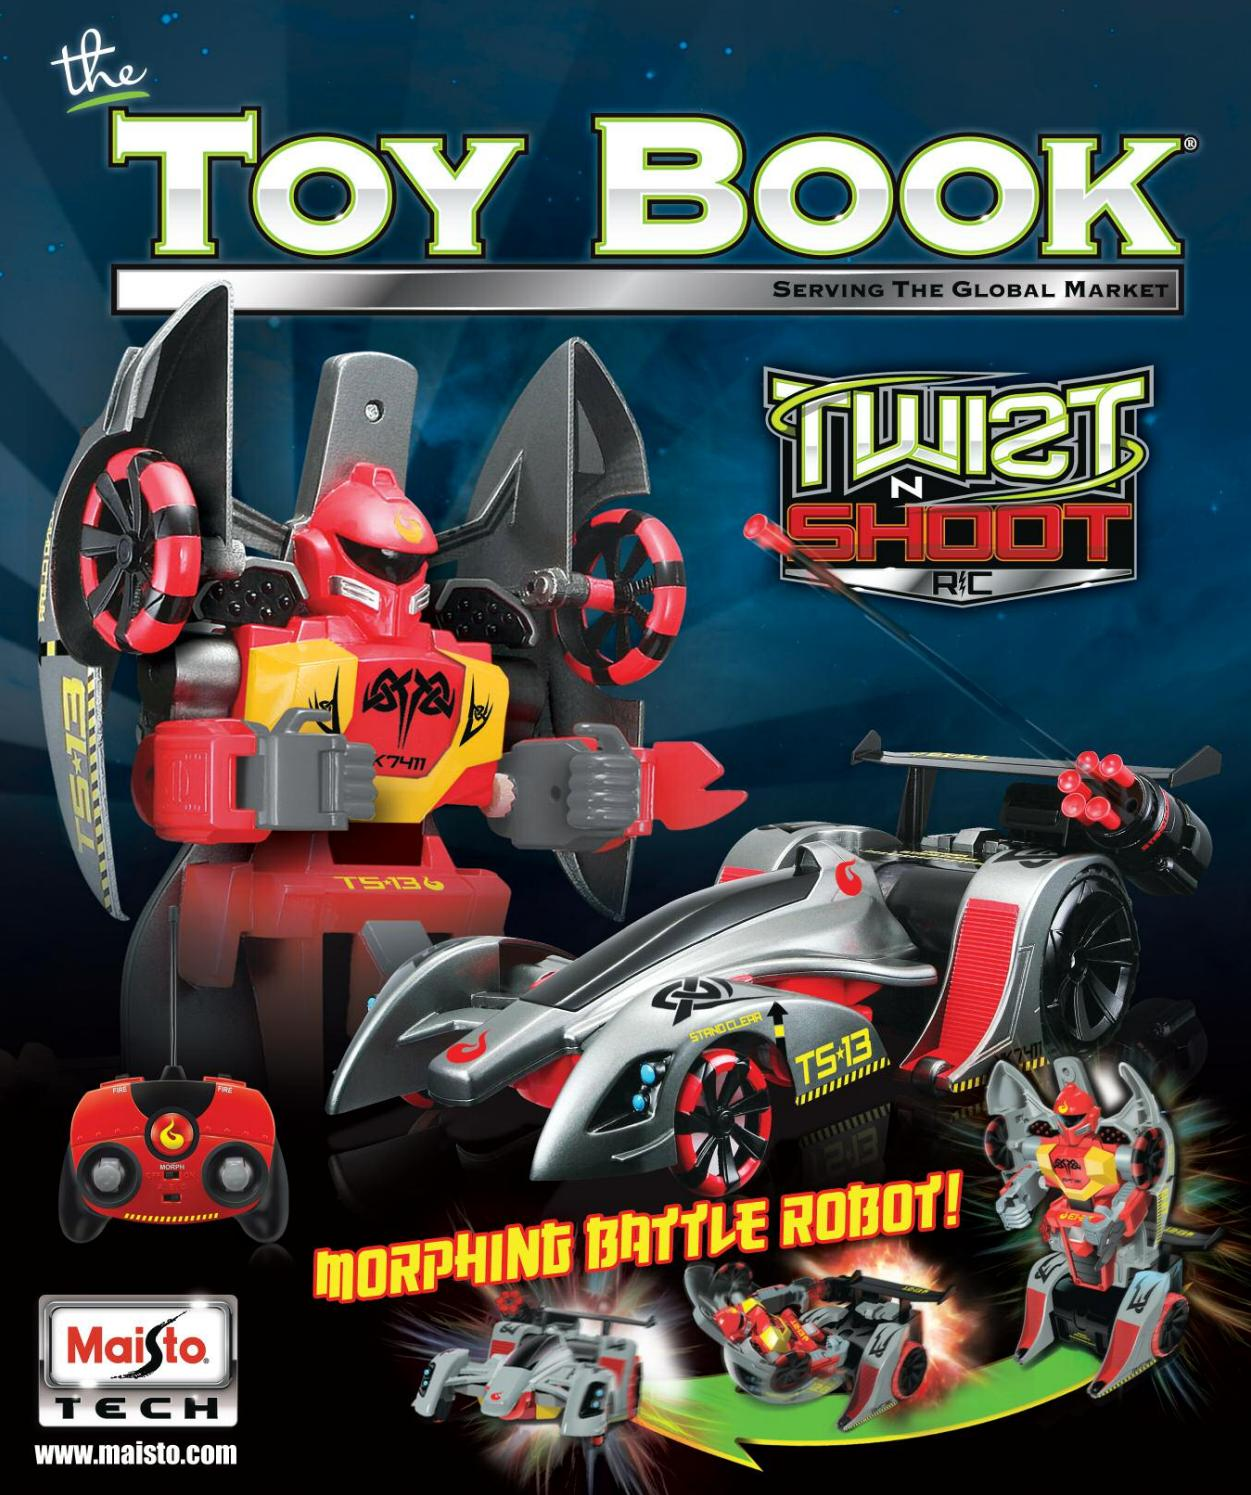 March/April 2013 by The Toy Book - issuu